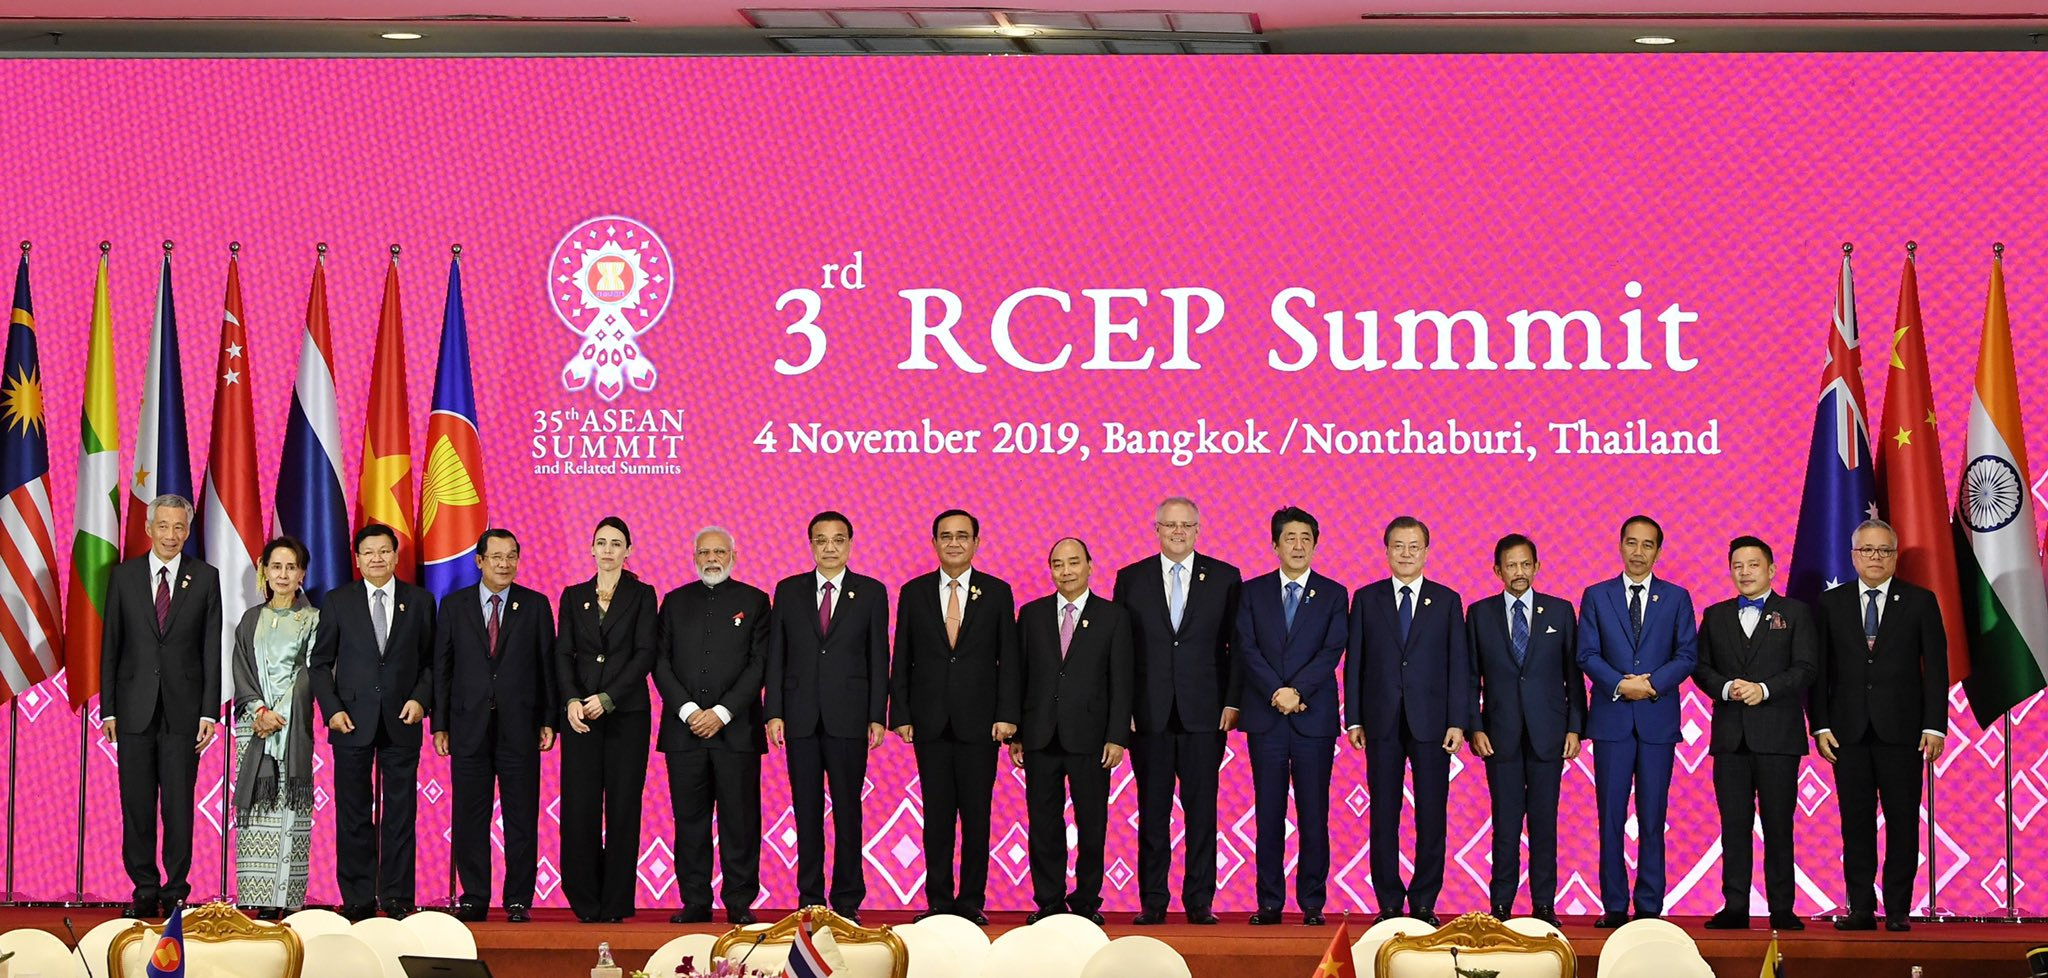 16 leaders involved in negotiations at the RCEP summit in Bangkok. Photo courtesy: Twitter/@narendramodi